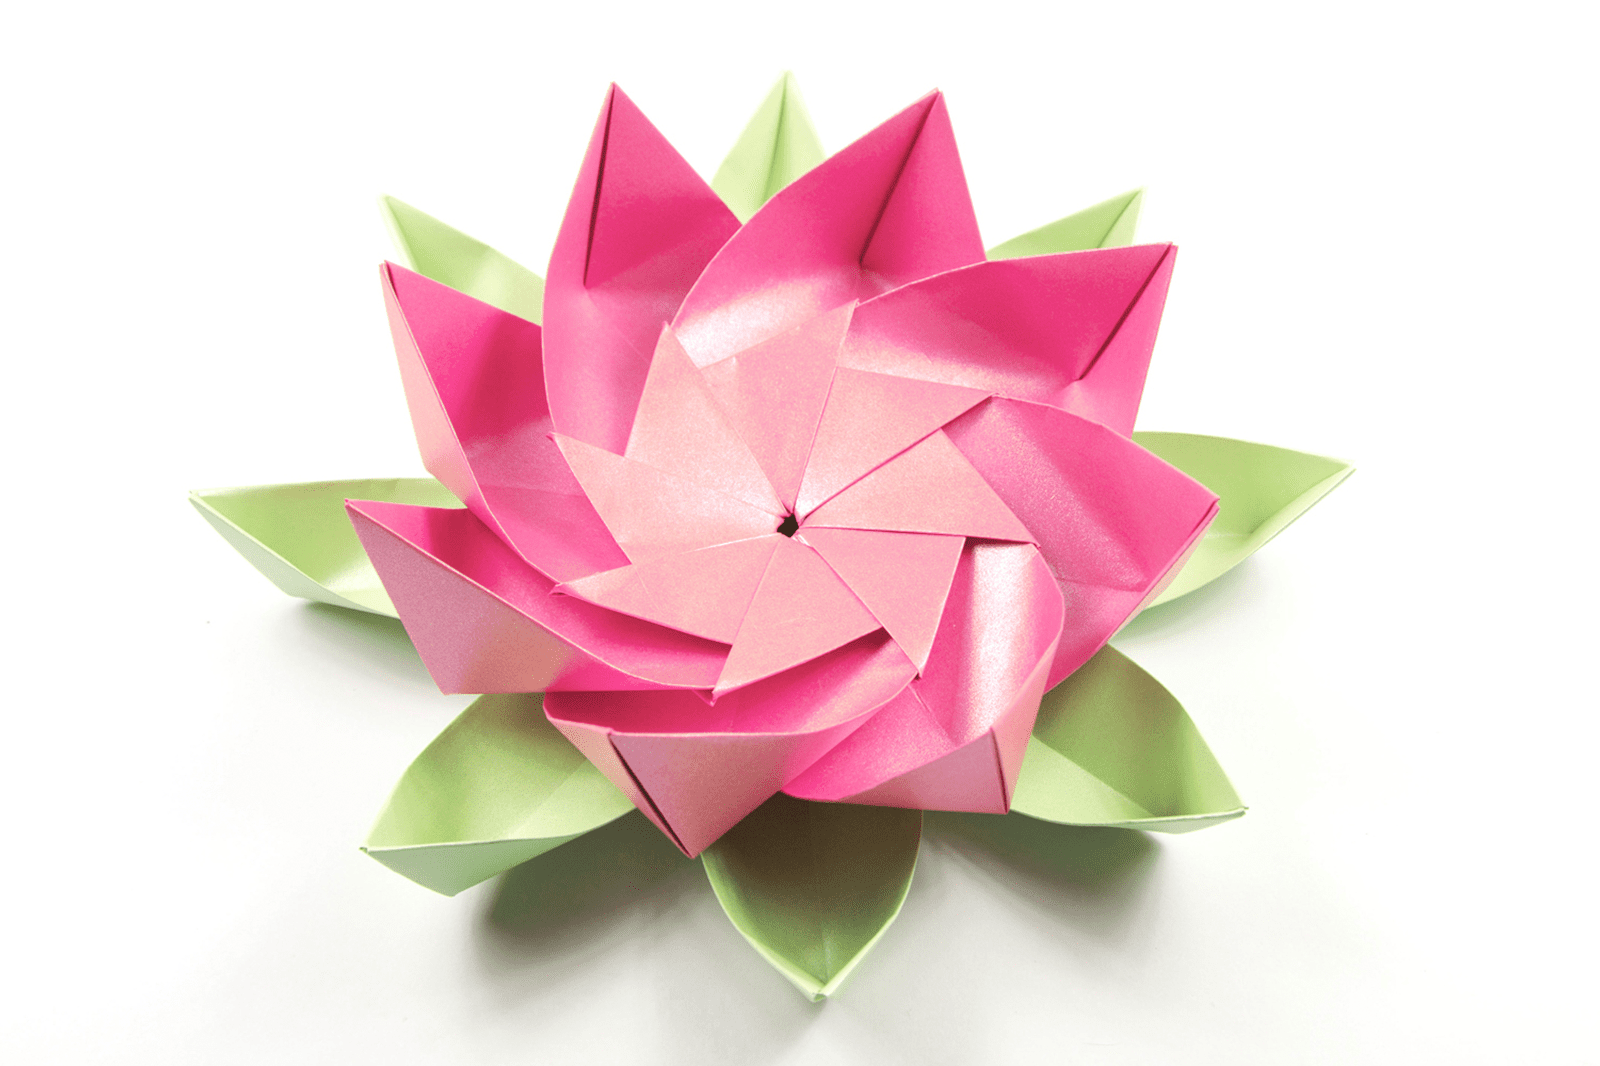 Origami flowers advanced topsimages modular origami lotus flower png 1600x1066 origami flowers advanced mightylinksfo